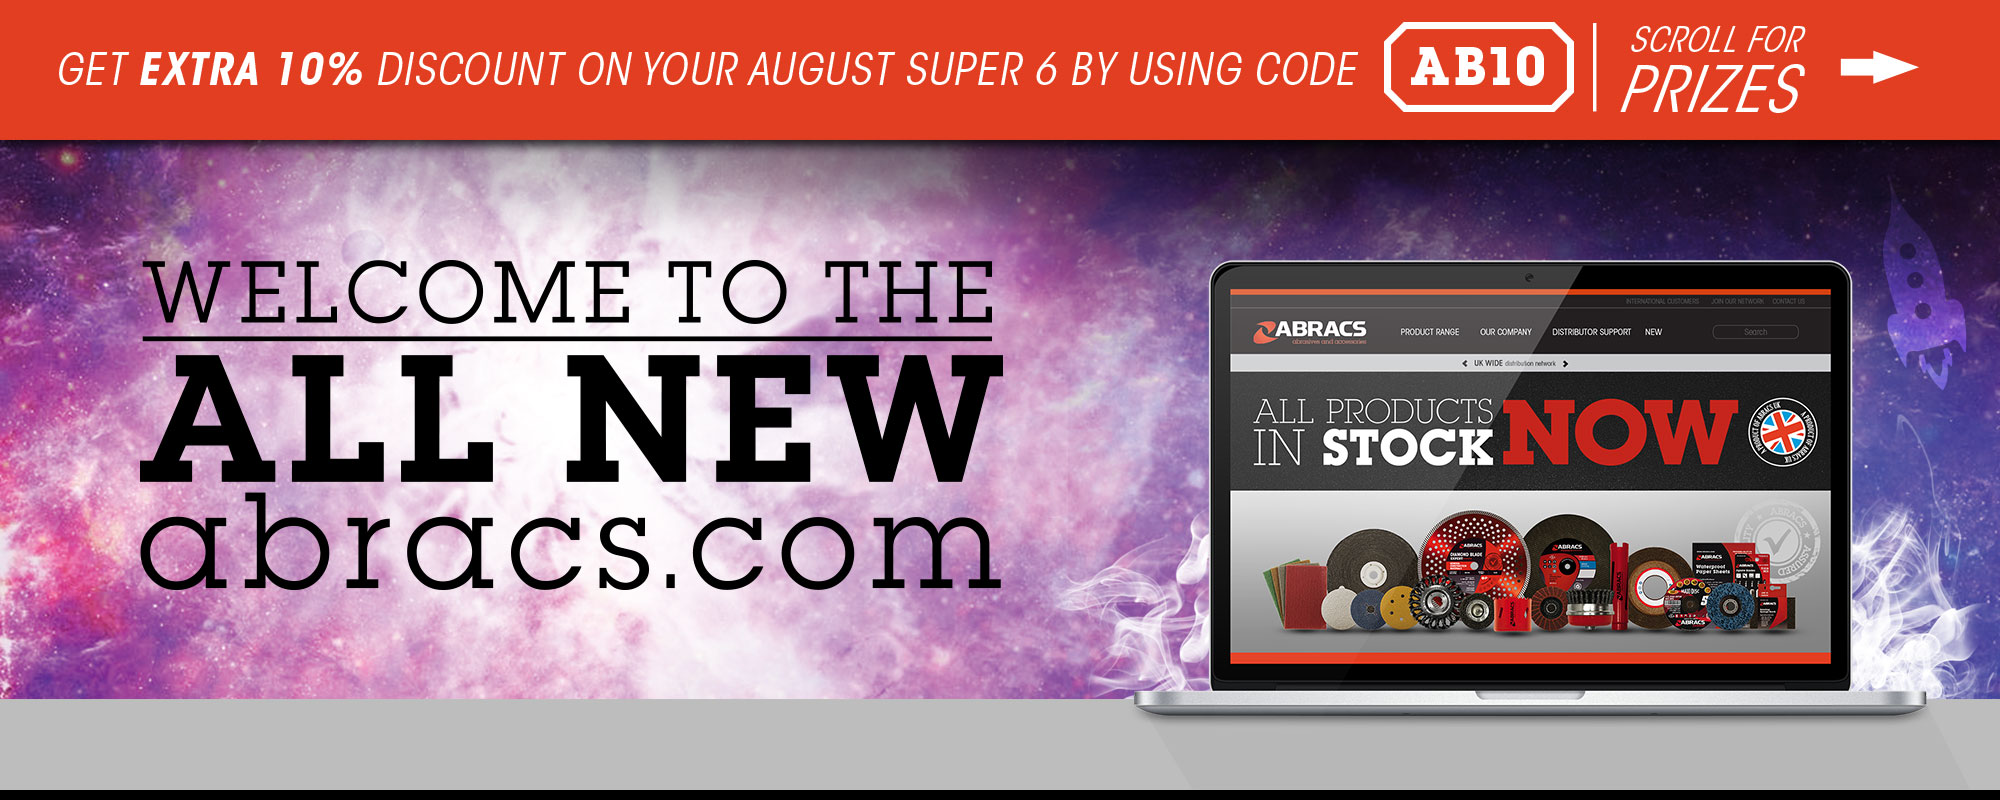 welcome to the all new abracs.com get an extra 10% discount off Super 6 Promotions by using code AB10 scroll for more details